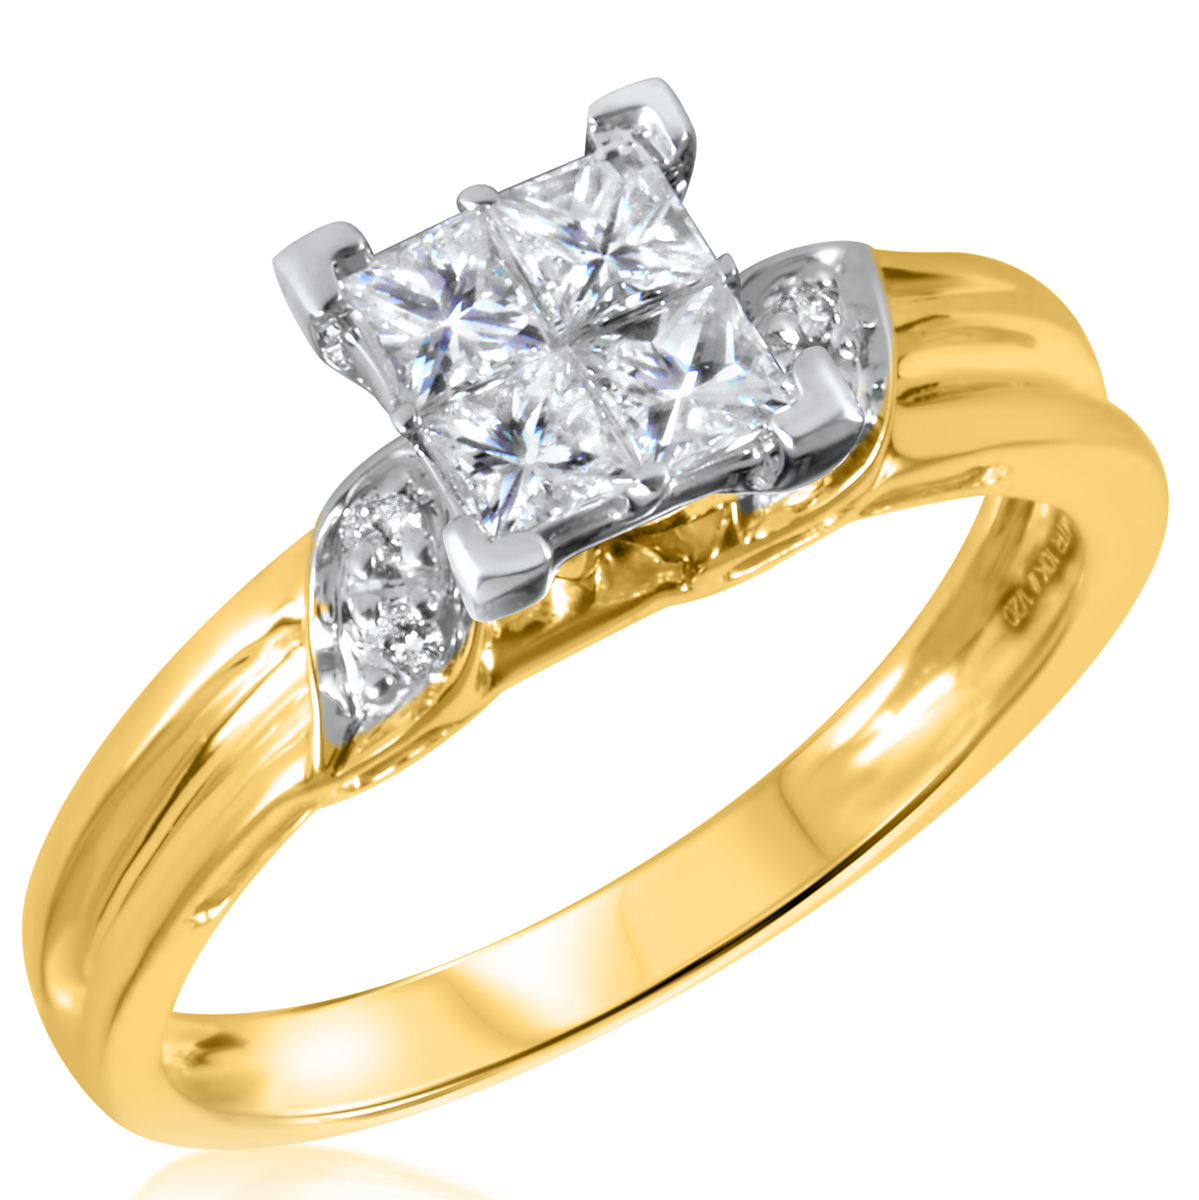 58 Ct Tw Diamond Ladies Engagement Ring 10k Yellow. Bar Set Wedding Rings. Spooky Wedding Rings. $5 000 Engagement Rings. $2000 Wedding Engagement Rings. Rose Pink Rings. Baguette Stone Rings. Lathe Wedding Rings. Black Stone Rings